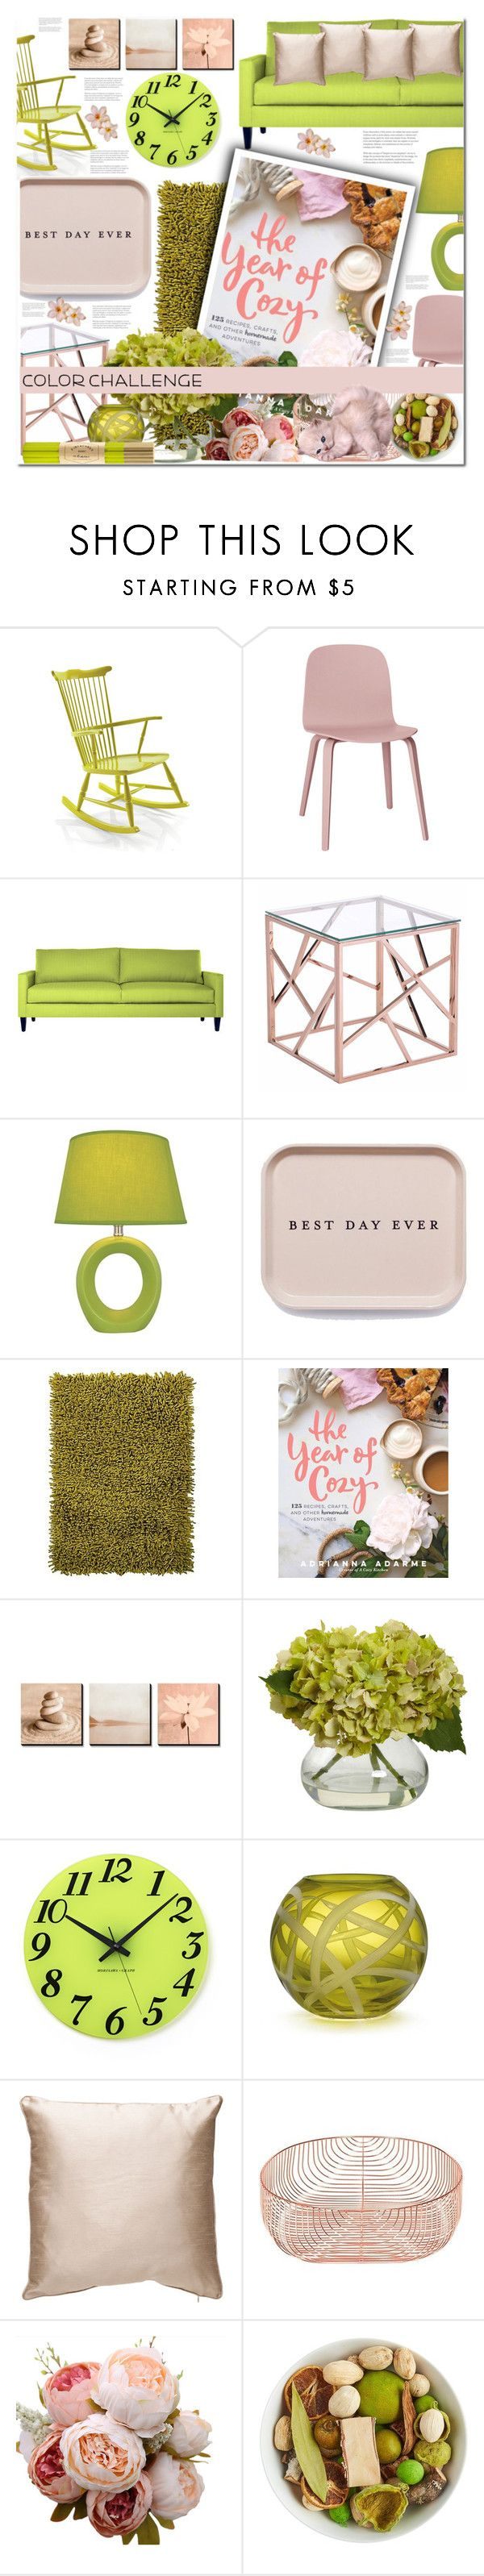 """Green and Blush!!!!"" by sweta-gupta ❤ liked on Polyvore featuring interior, interiors, interior design, home, home decor, interior decorating, Muuto, Zuo, Lite Source and Chandra Rugs"